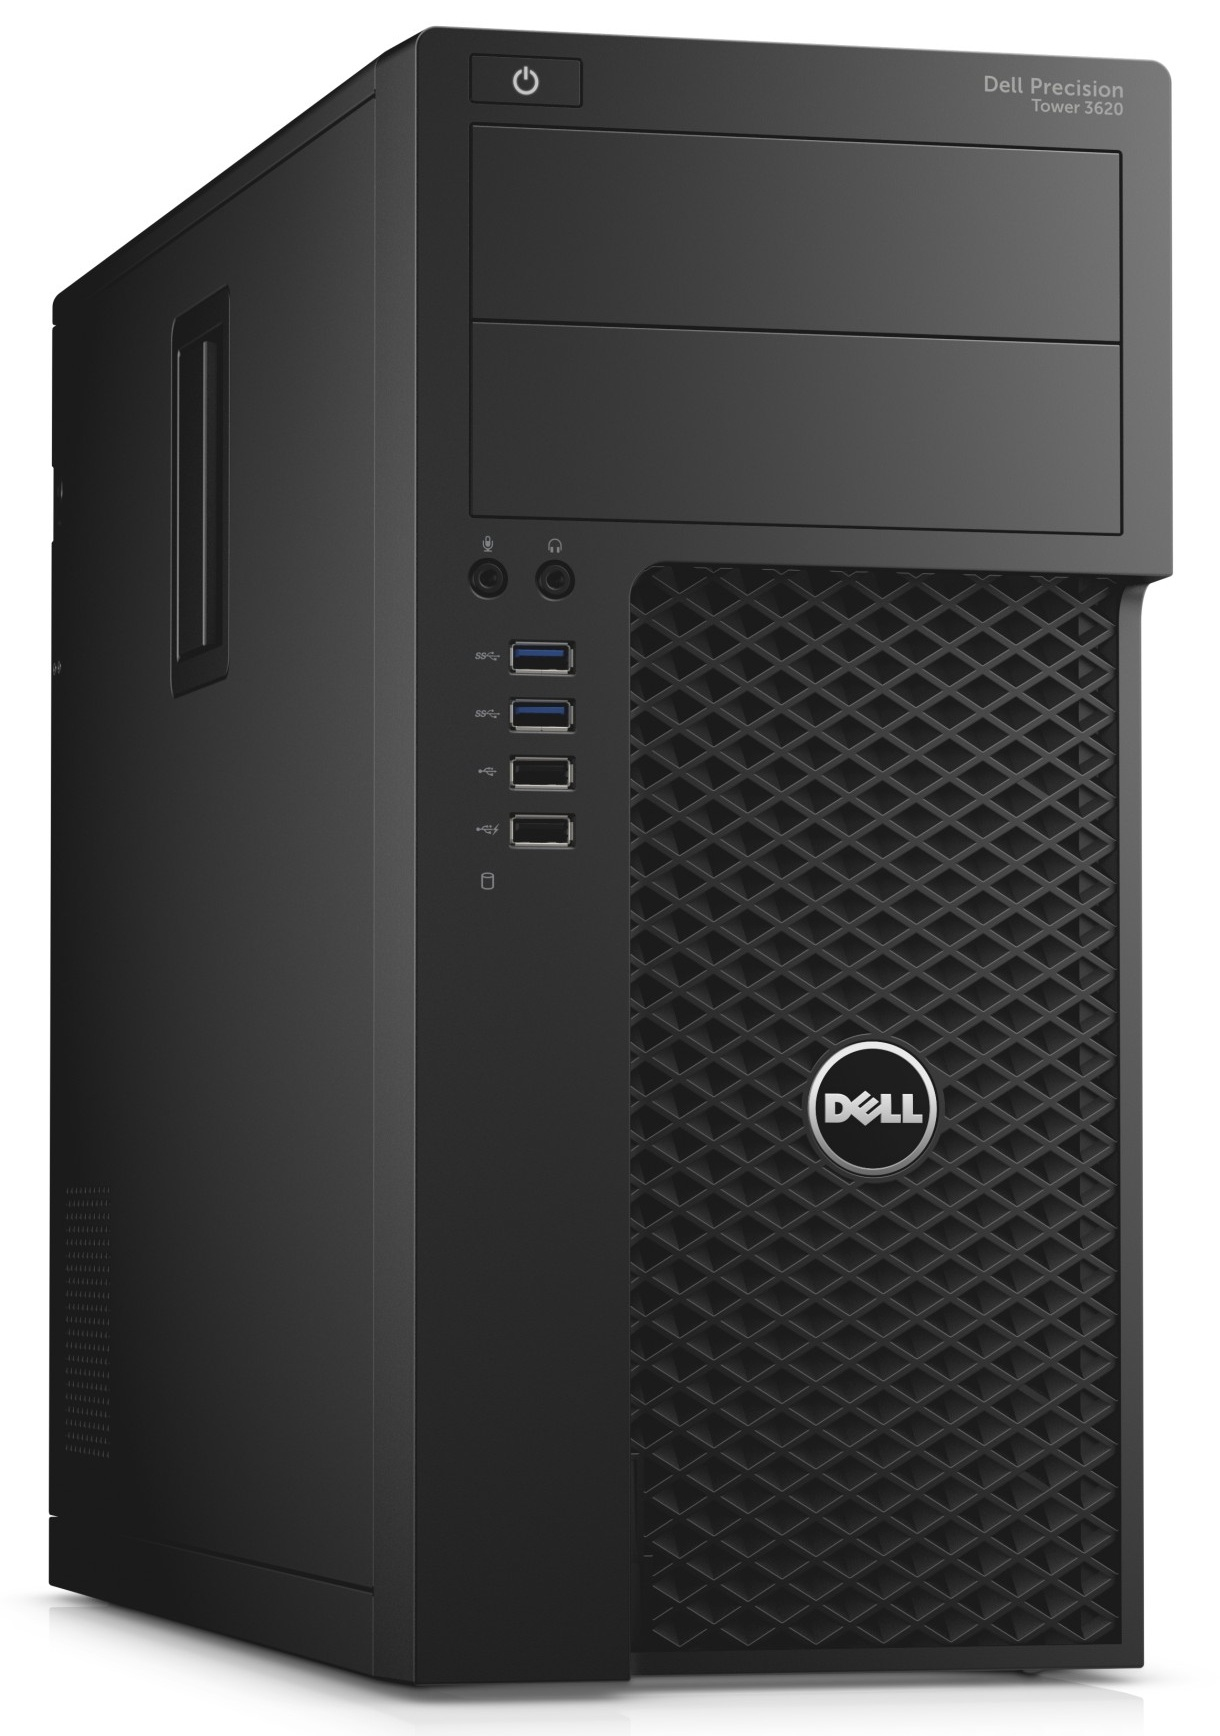 DELL KPWK9 PRECISION T3620 4.2GHZ I7-7700K MINI TOWER BLACK WORKSTATION